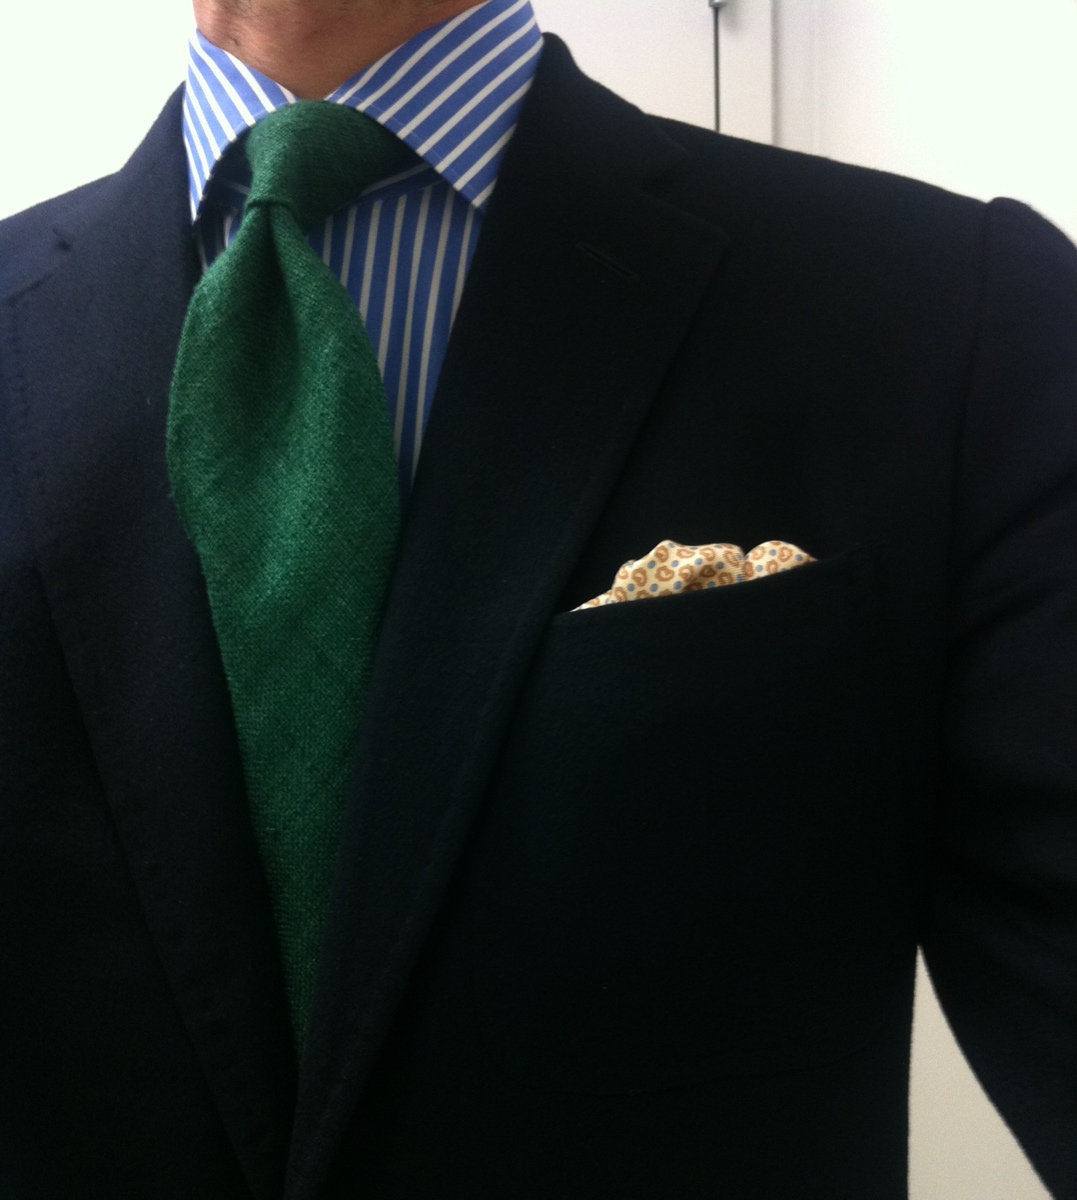 Dimple In The Tie For Business Meetings Styleforum